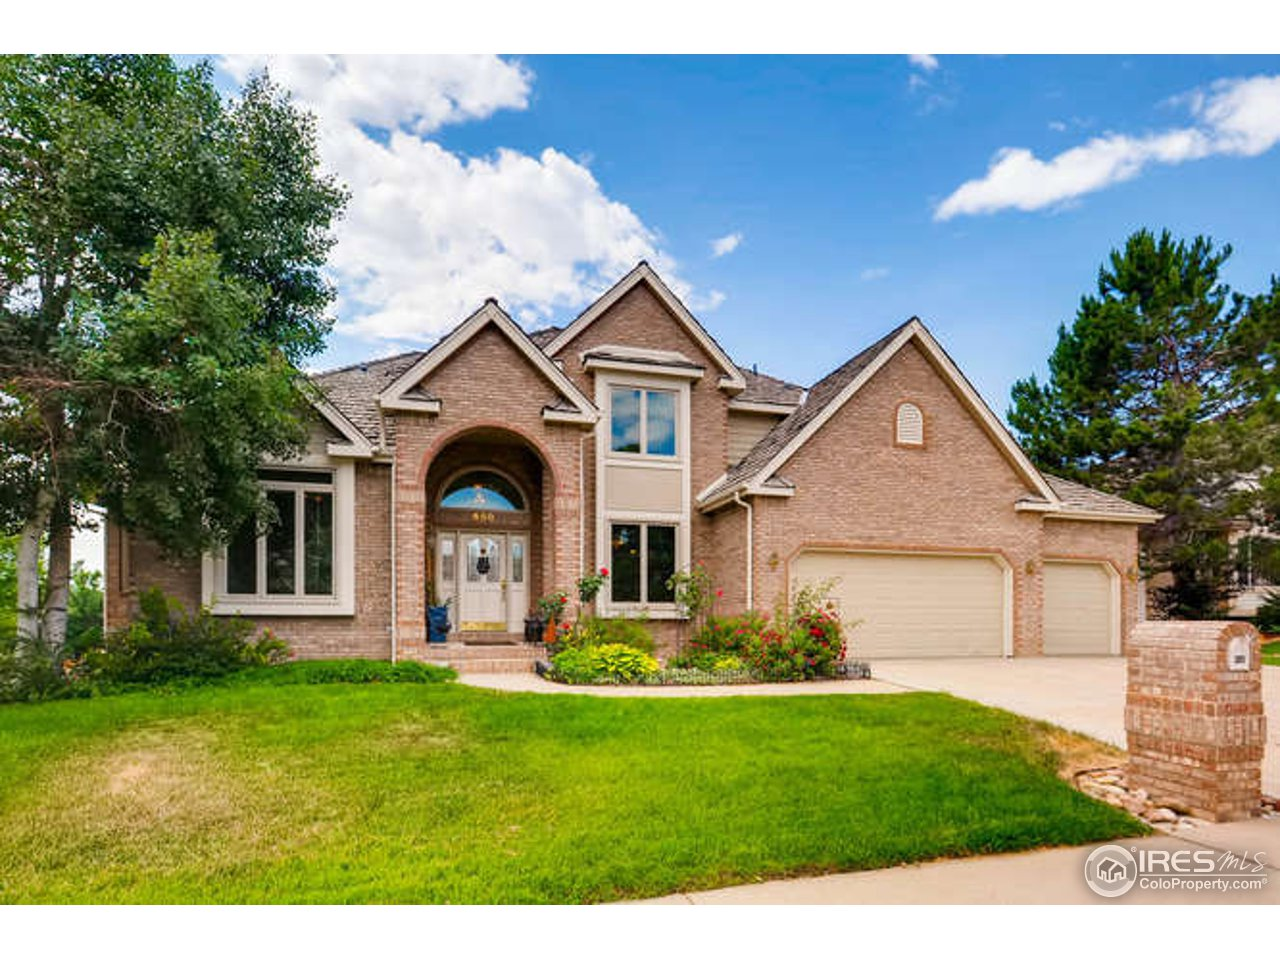 650 Redstone Dr, Broomfield, CO 80020